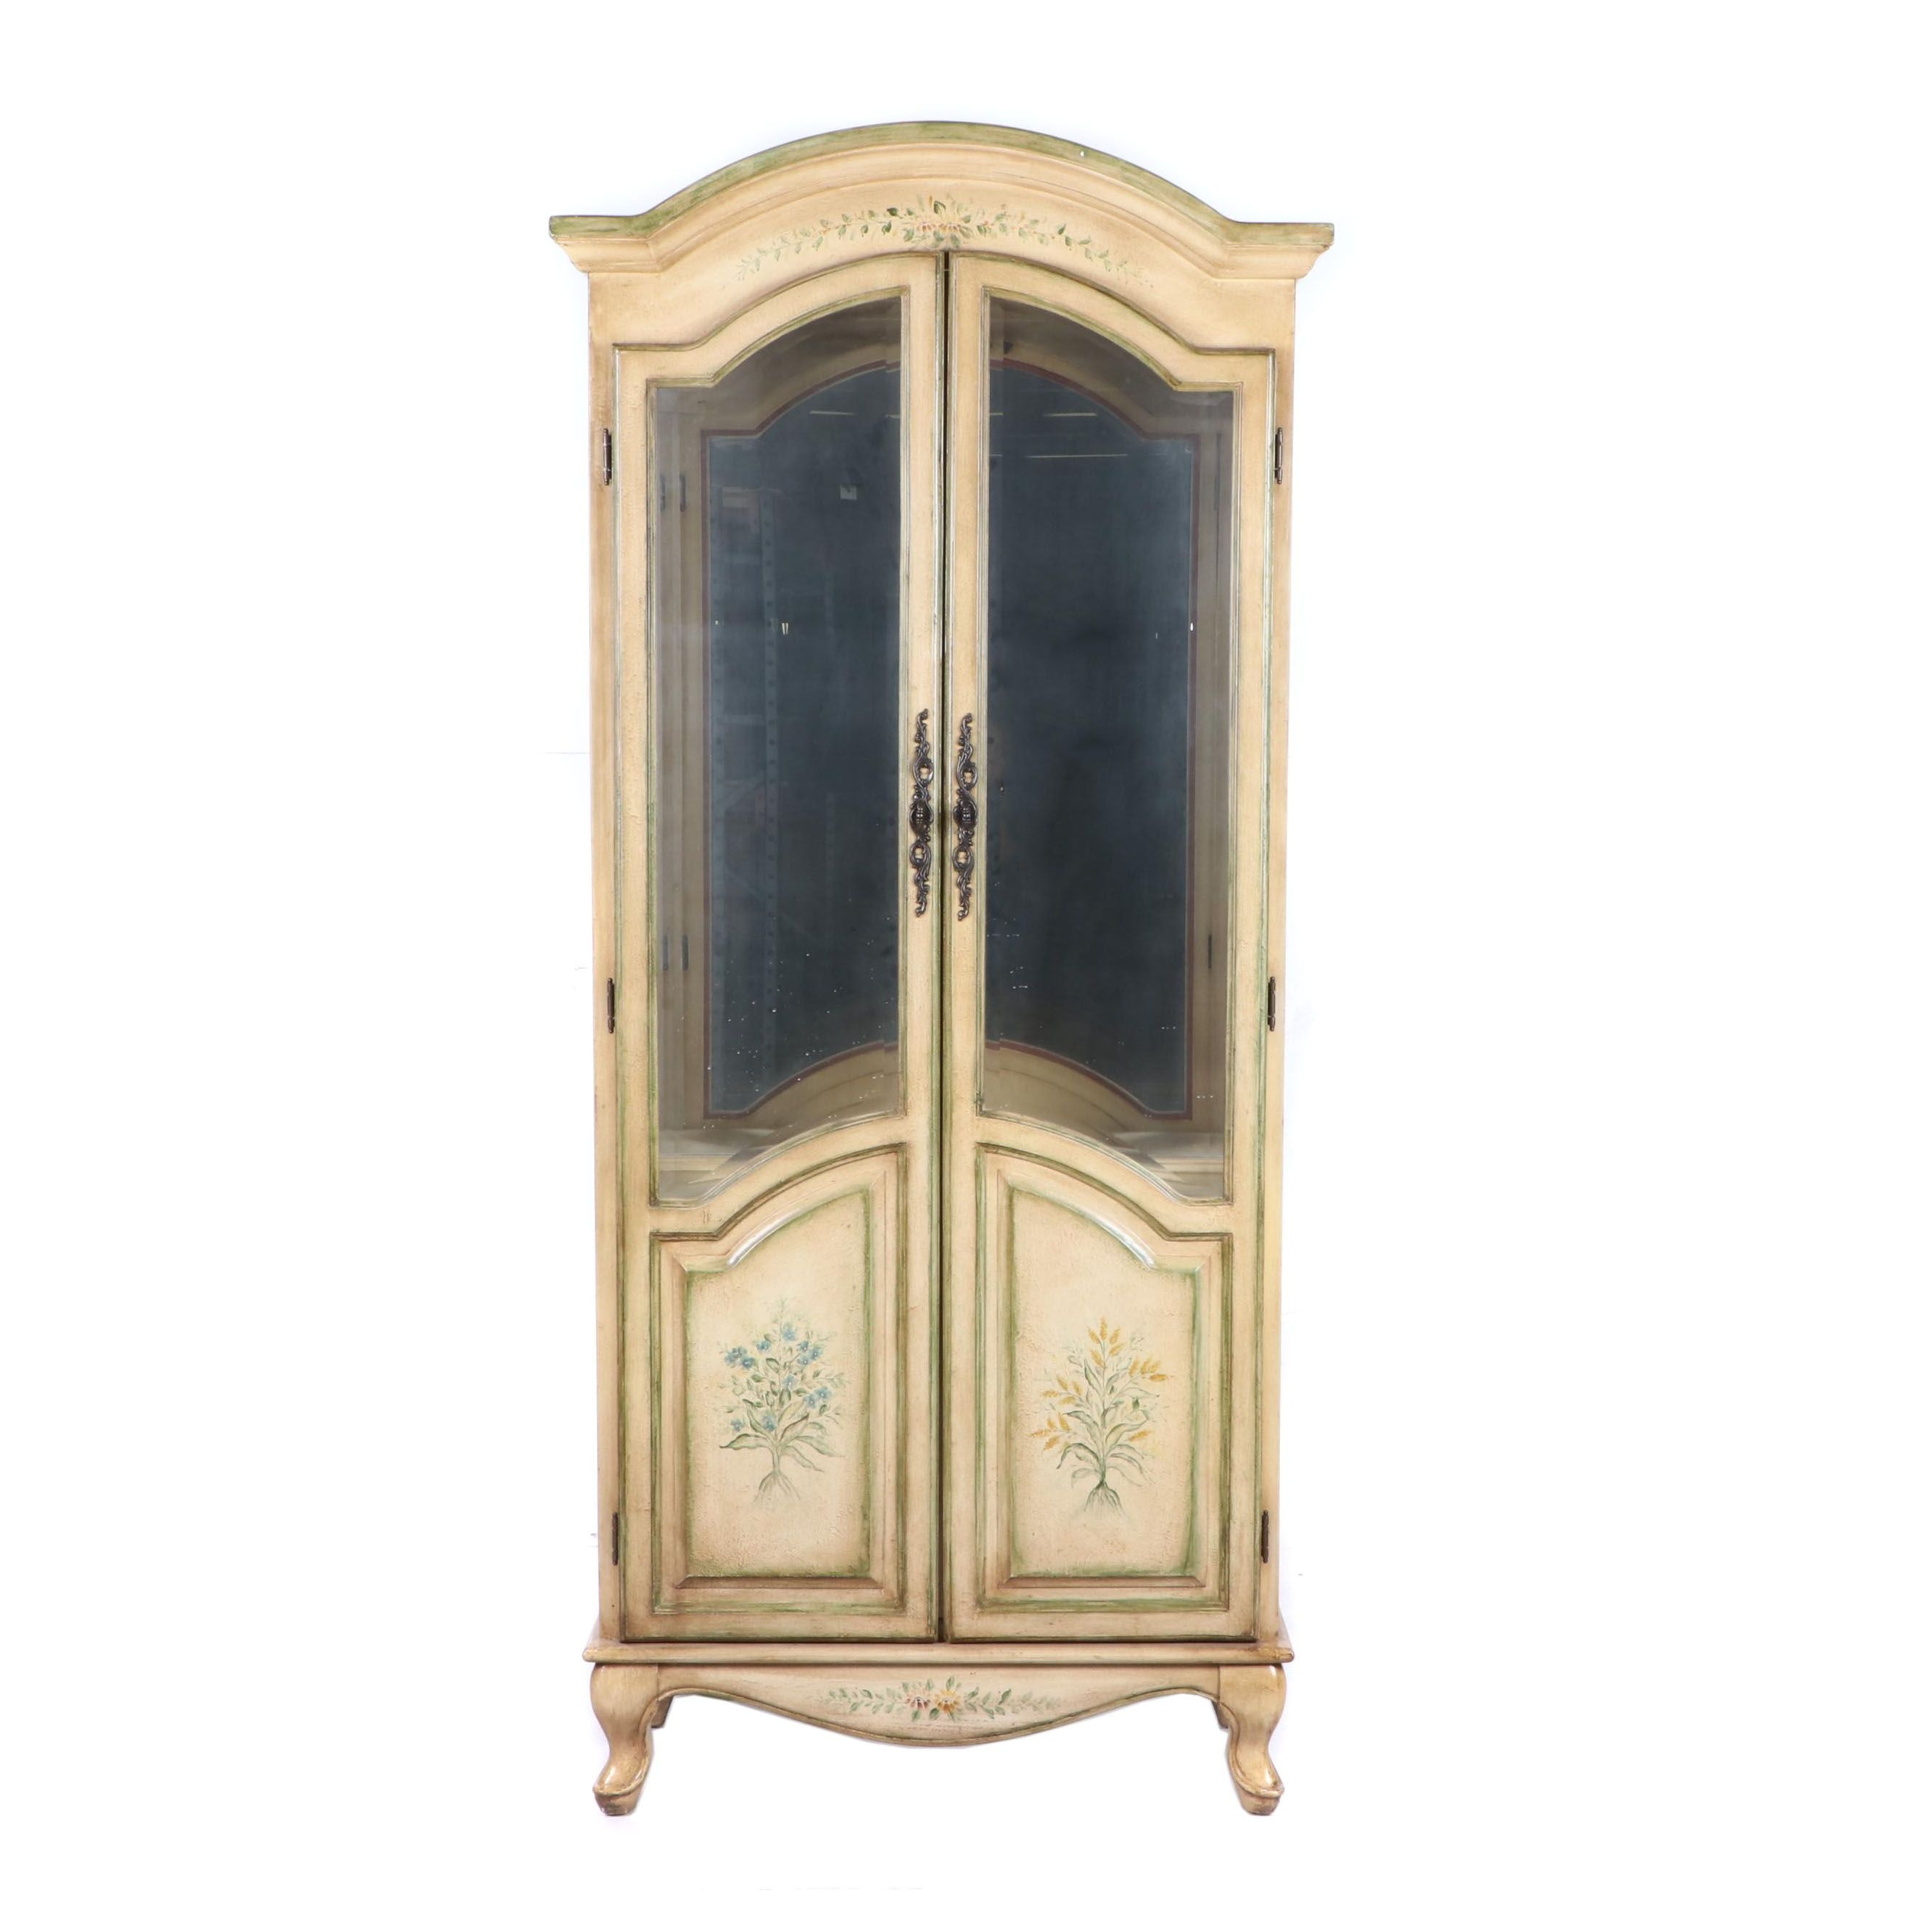 French Provincial Style Painted Wood Illuminated Display Cabinet, 20th Century